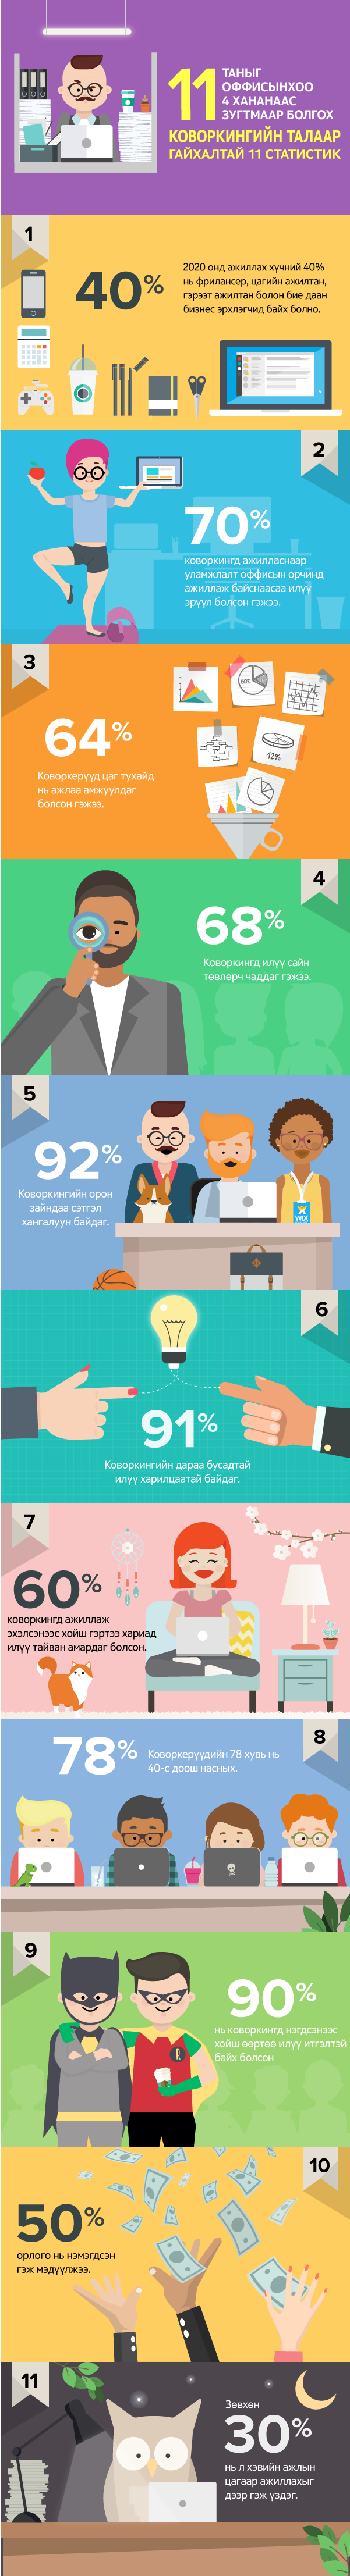 infographic-coworking-mgl-web